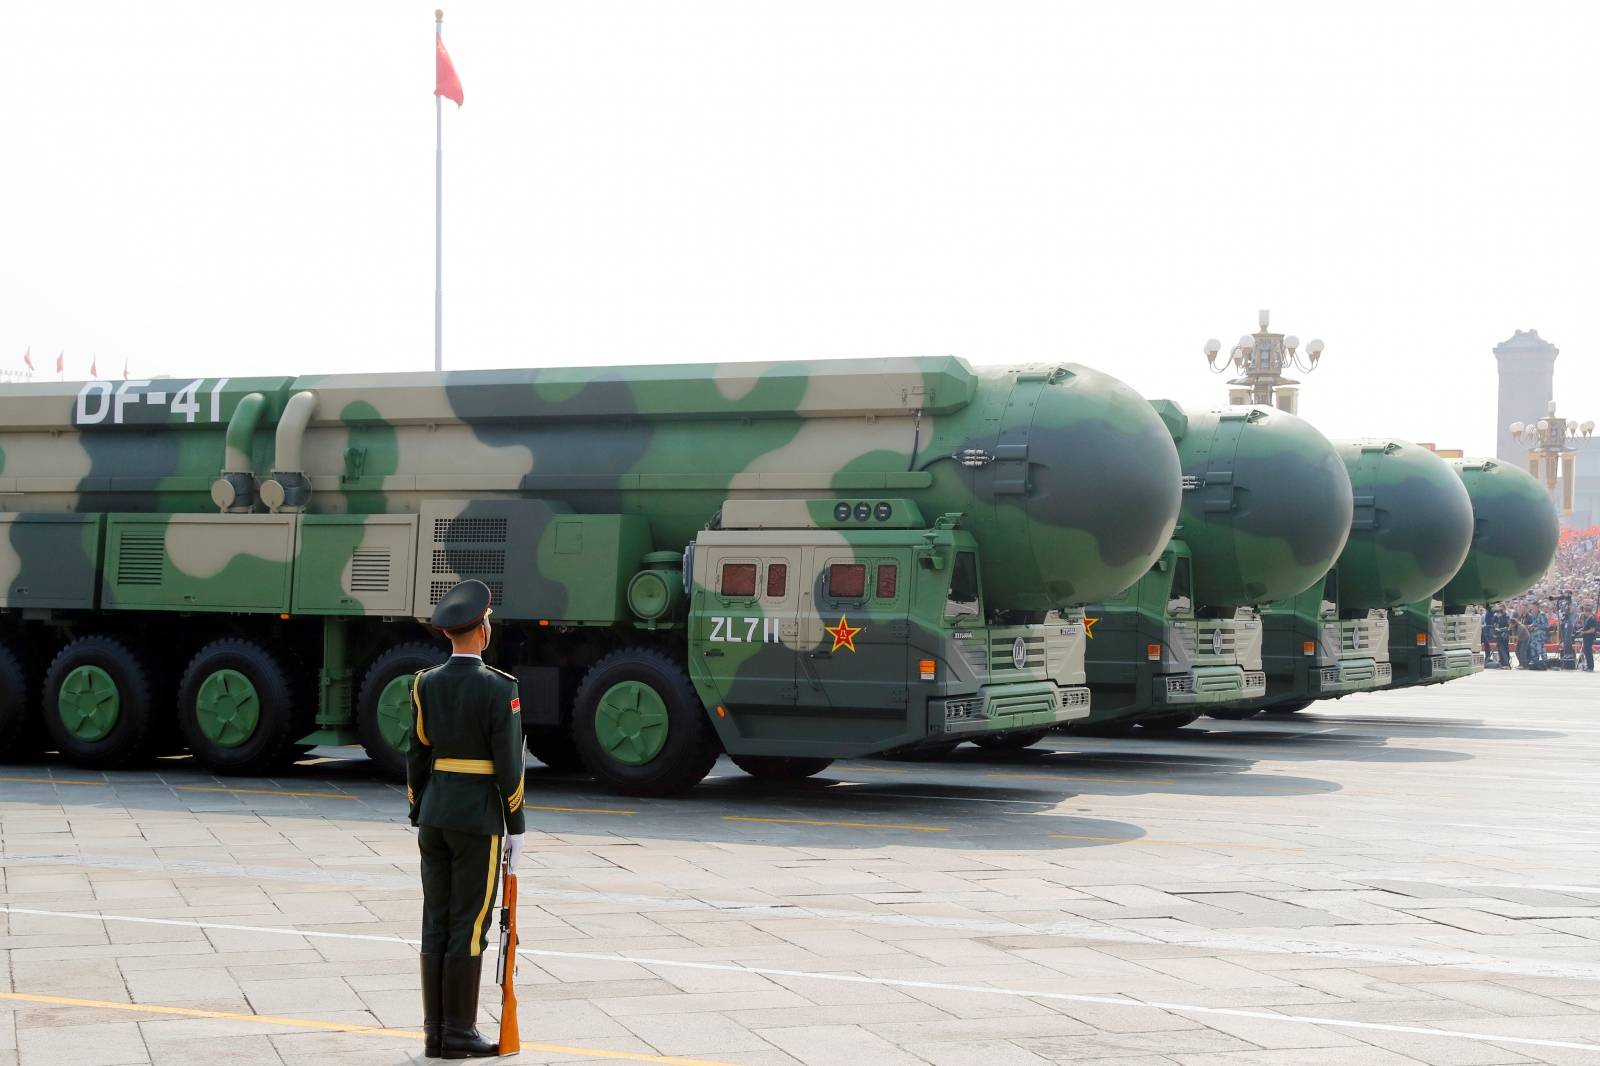 Military vehicles carrying DF-41 intercontinental ballistic missiles travel past Tiananmen Square during the military parade marking the 70th founding anniversary of People's Republic of China